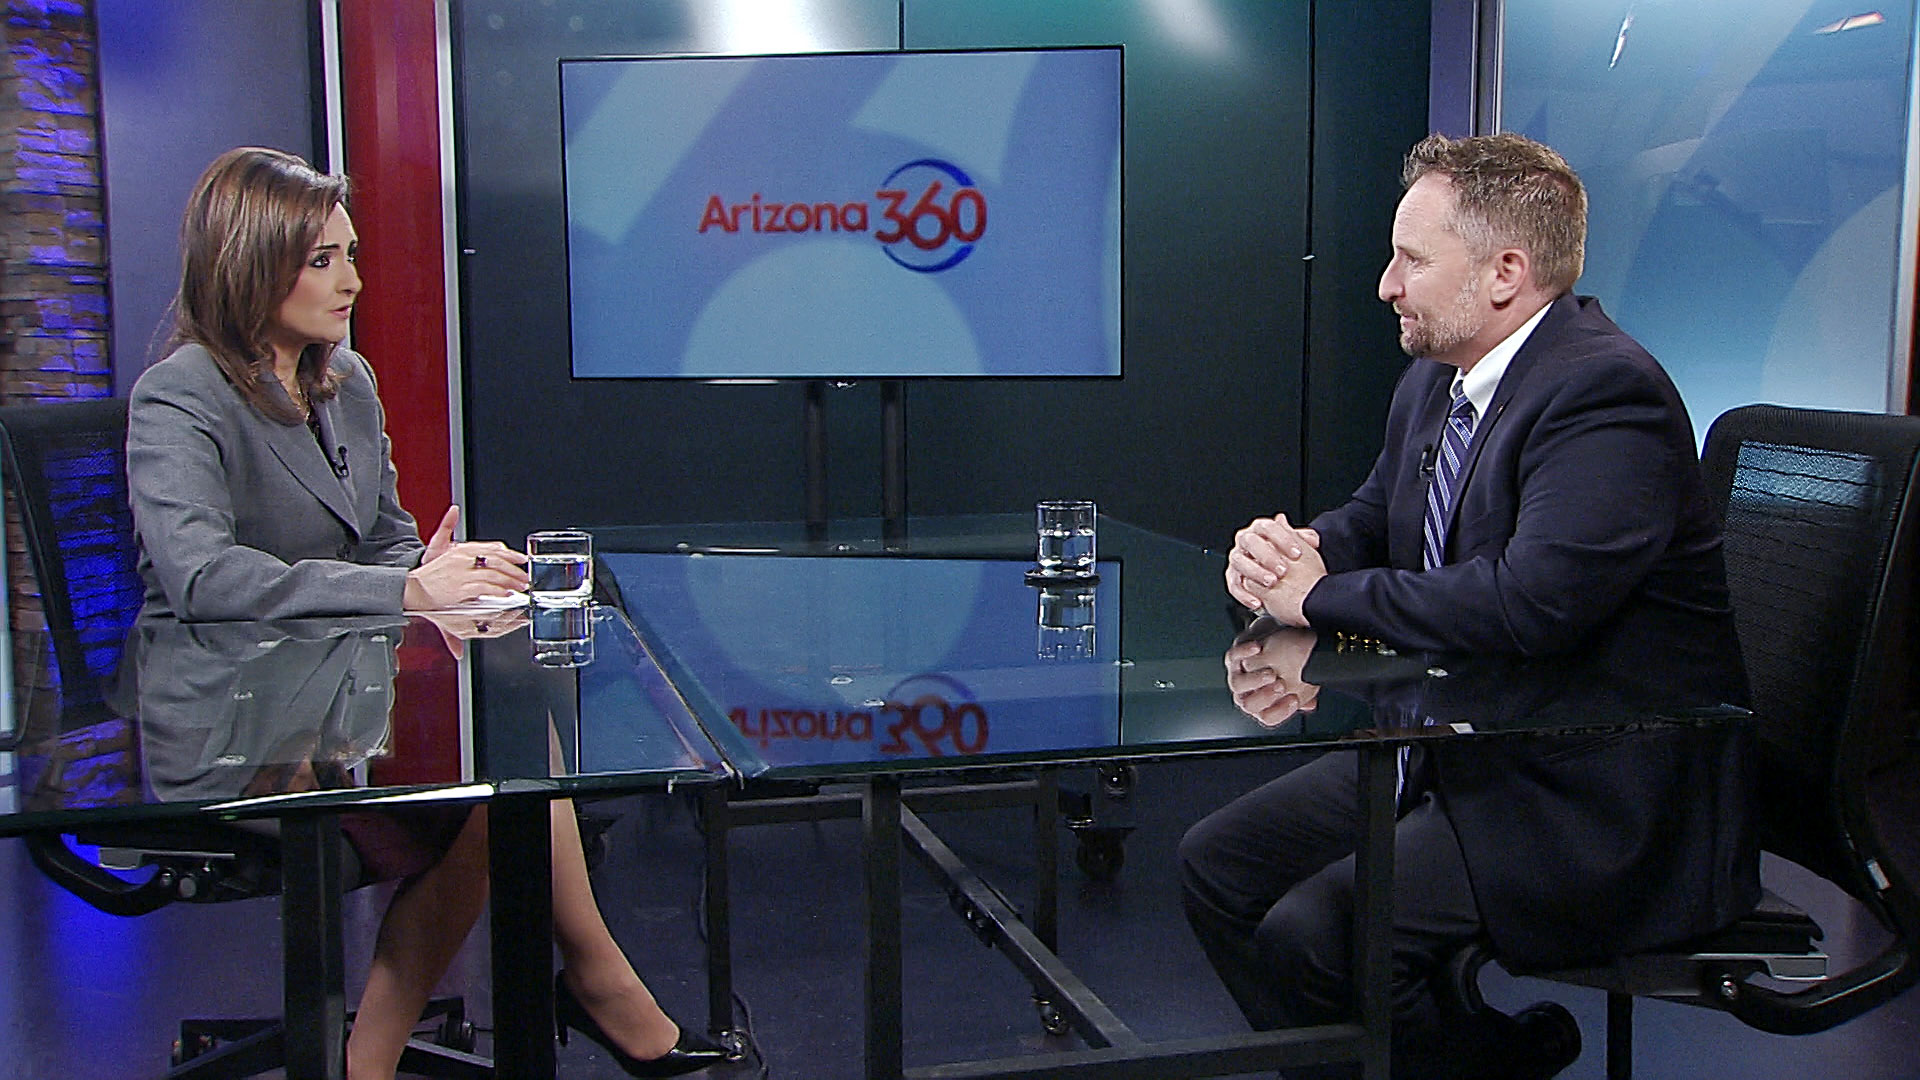 Pima County Superintendent of Schools Dustin Williams sits for an interview with Arizona 360 host Lorraine Rivera on Jan. 24, 2020.